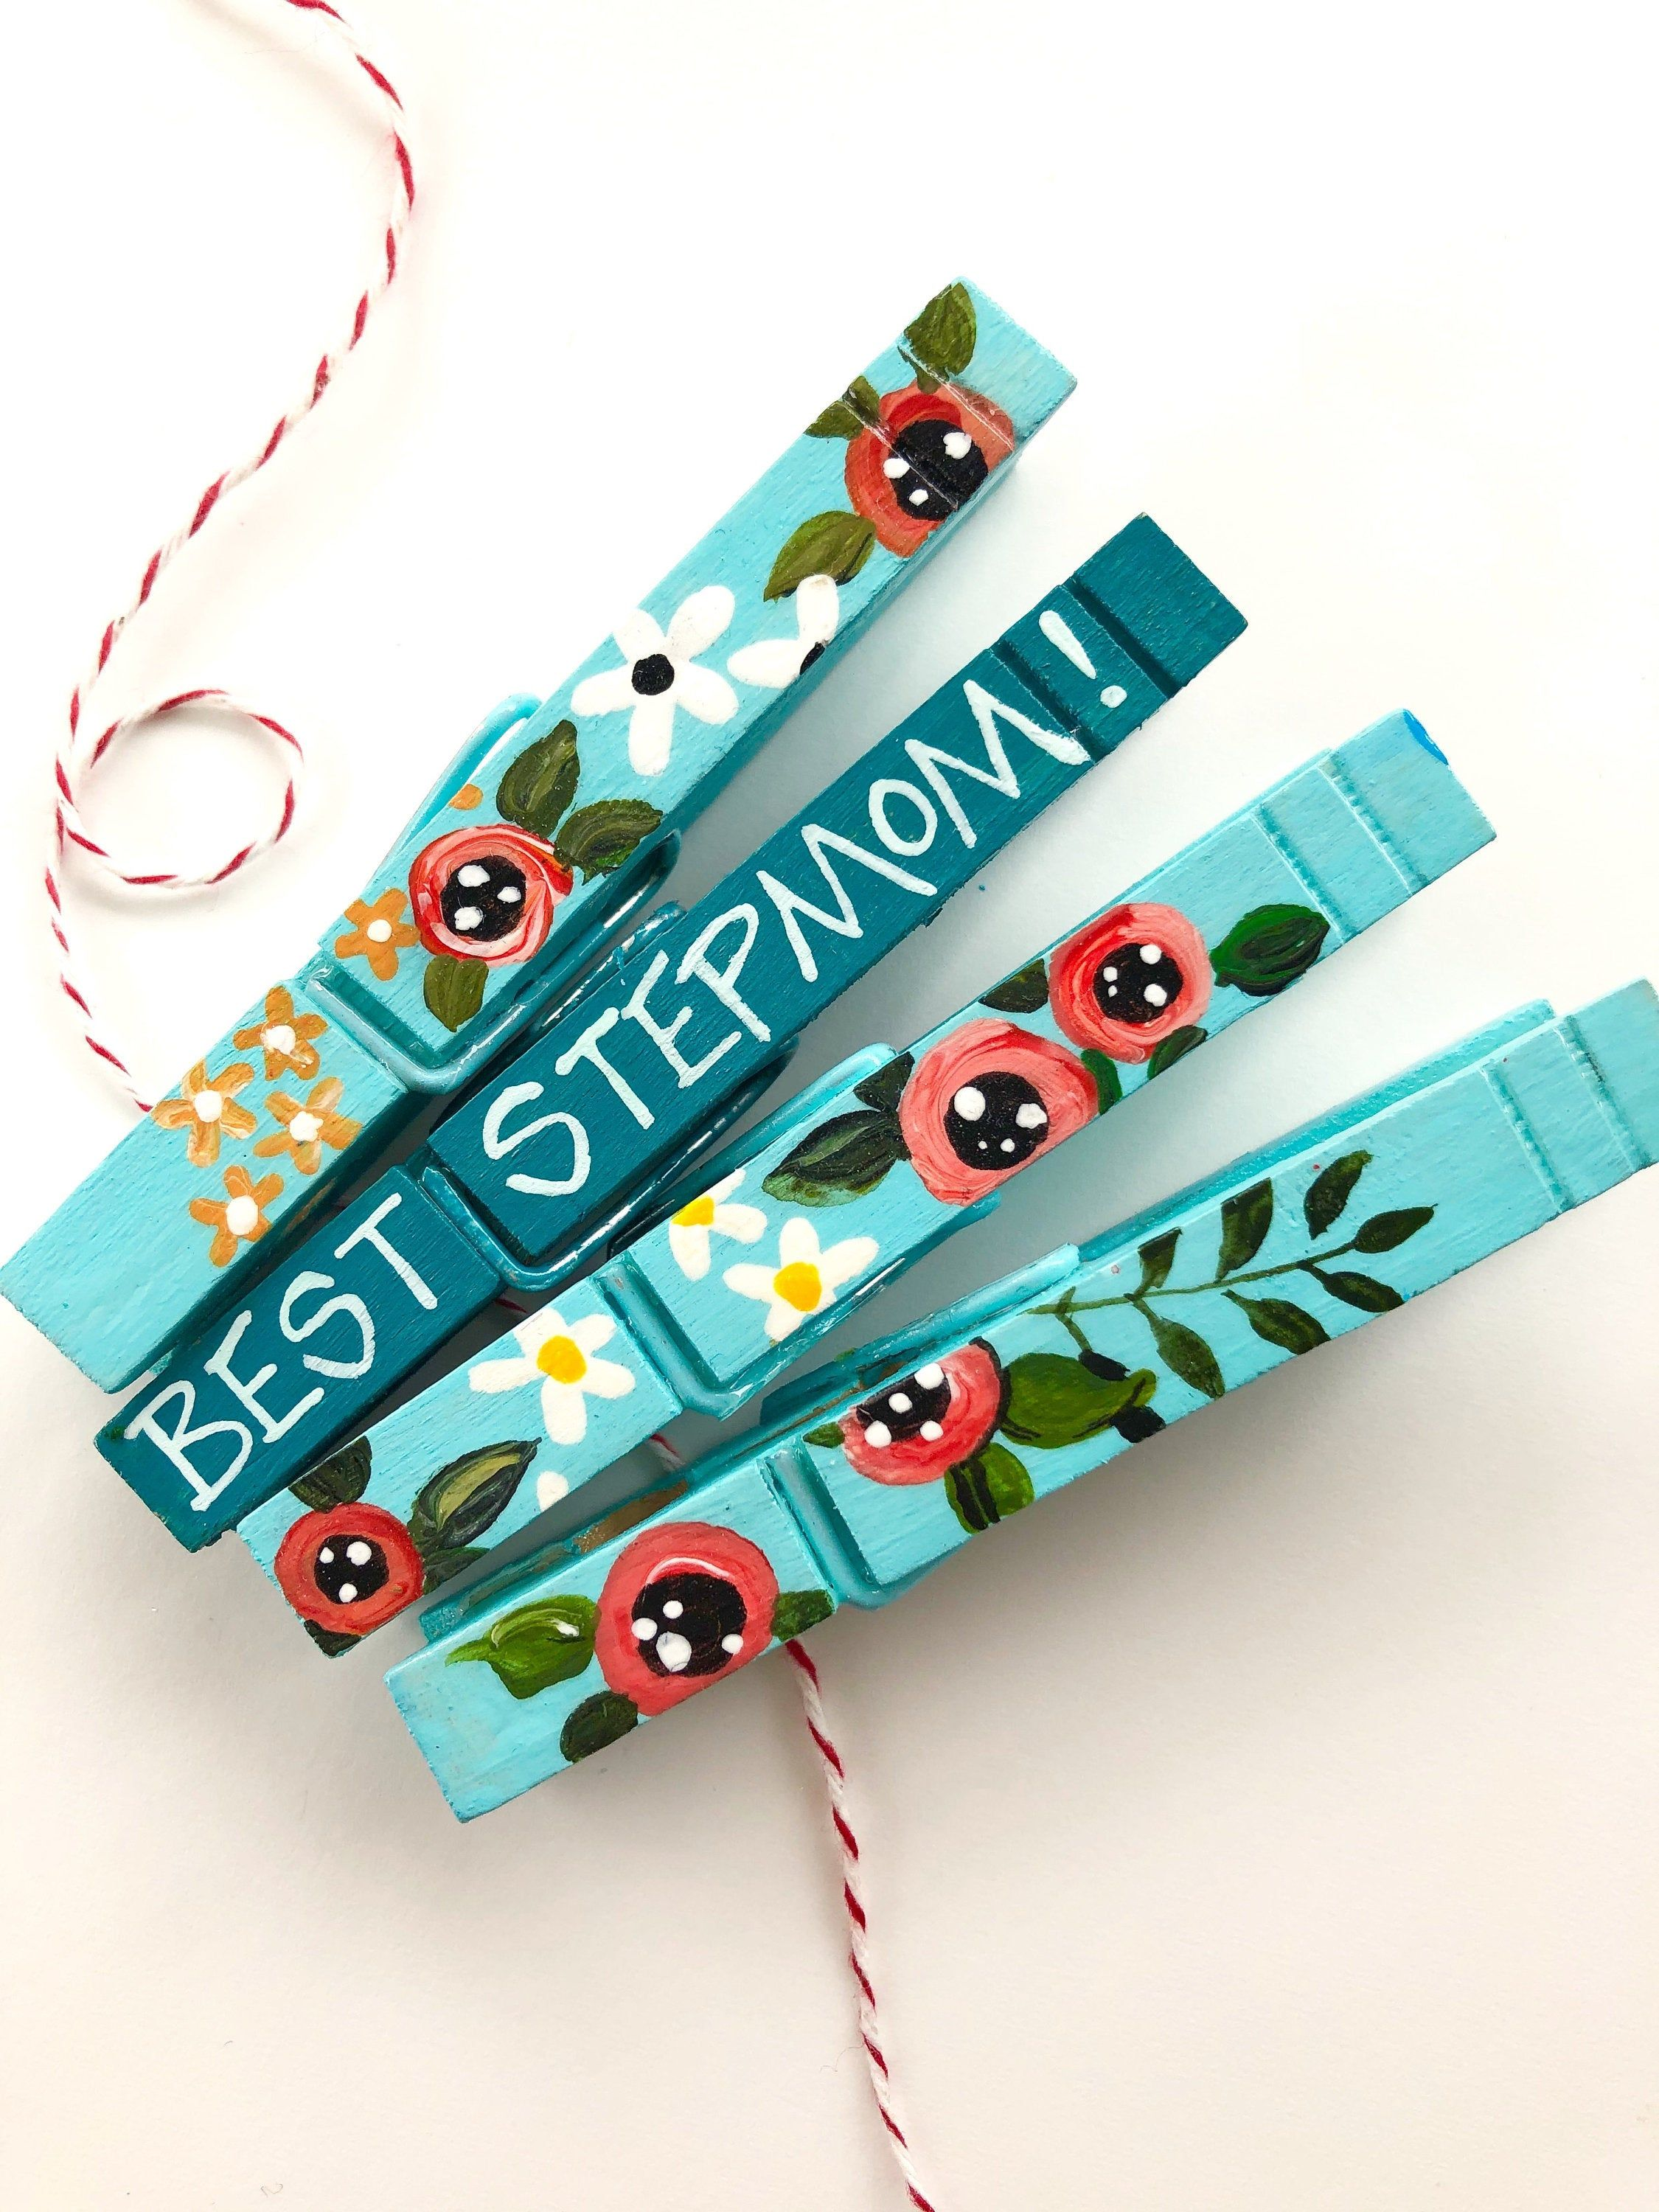 Best stepmom clothespins floral clothespins hand painted